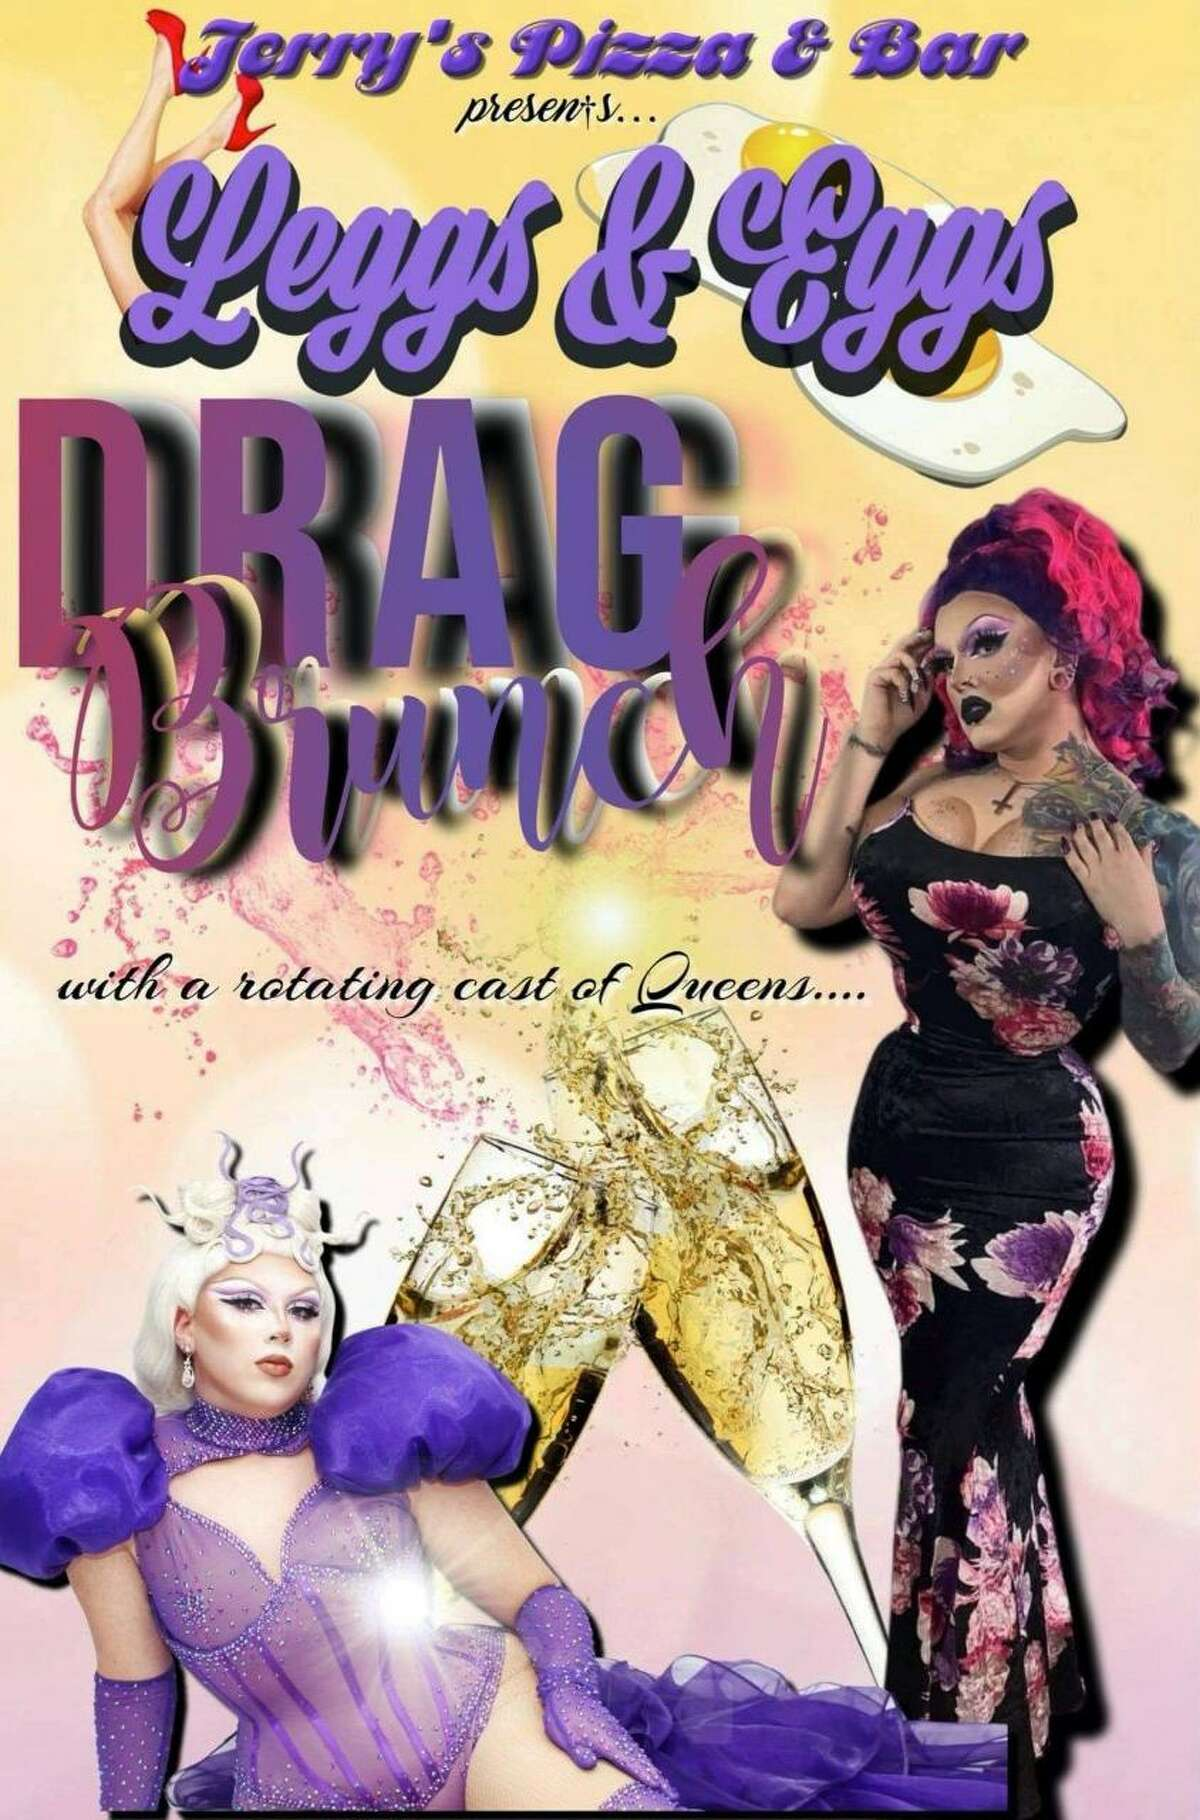 """Jerry's Pizza, 635 S. Main St., Middletown, will host a """"Legs & Eggs"""" drag queen brunch Sunday at 10 a.m."""